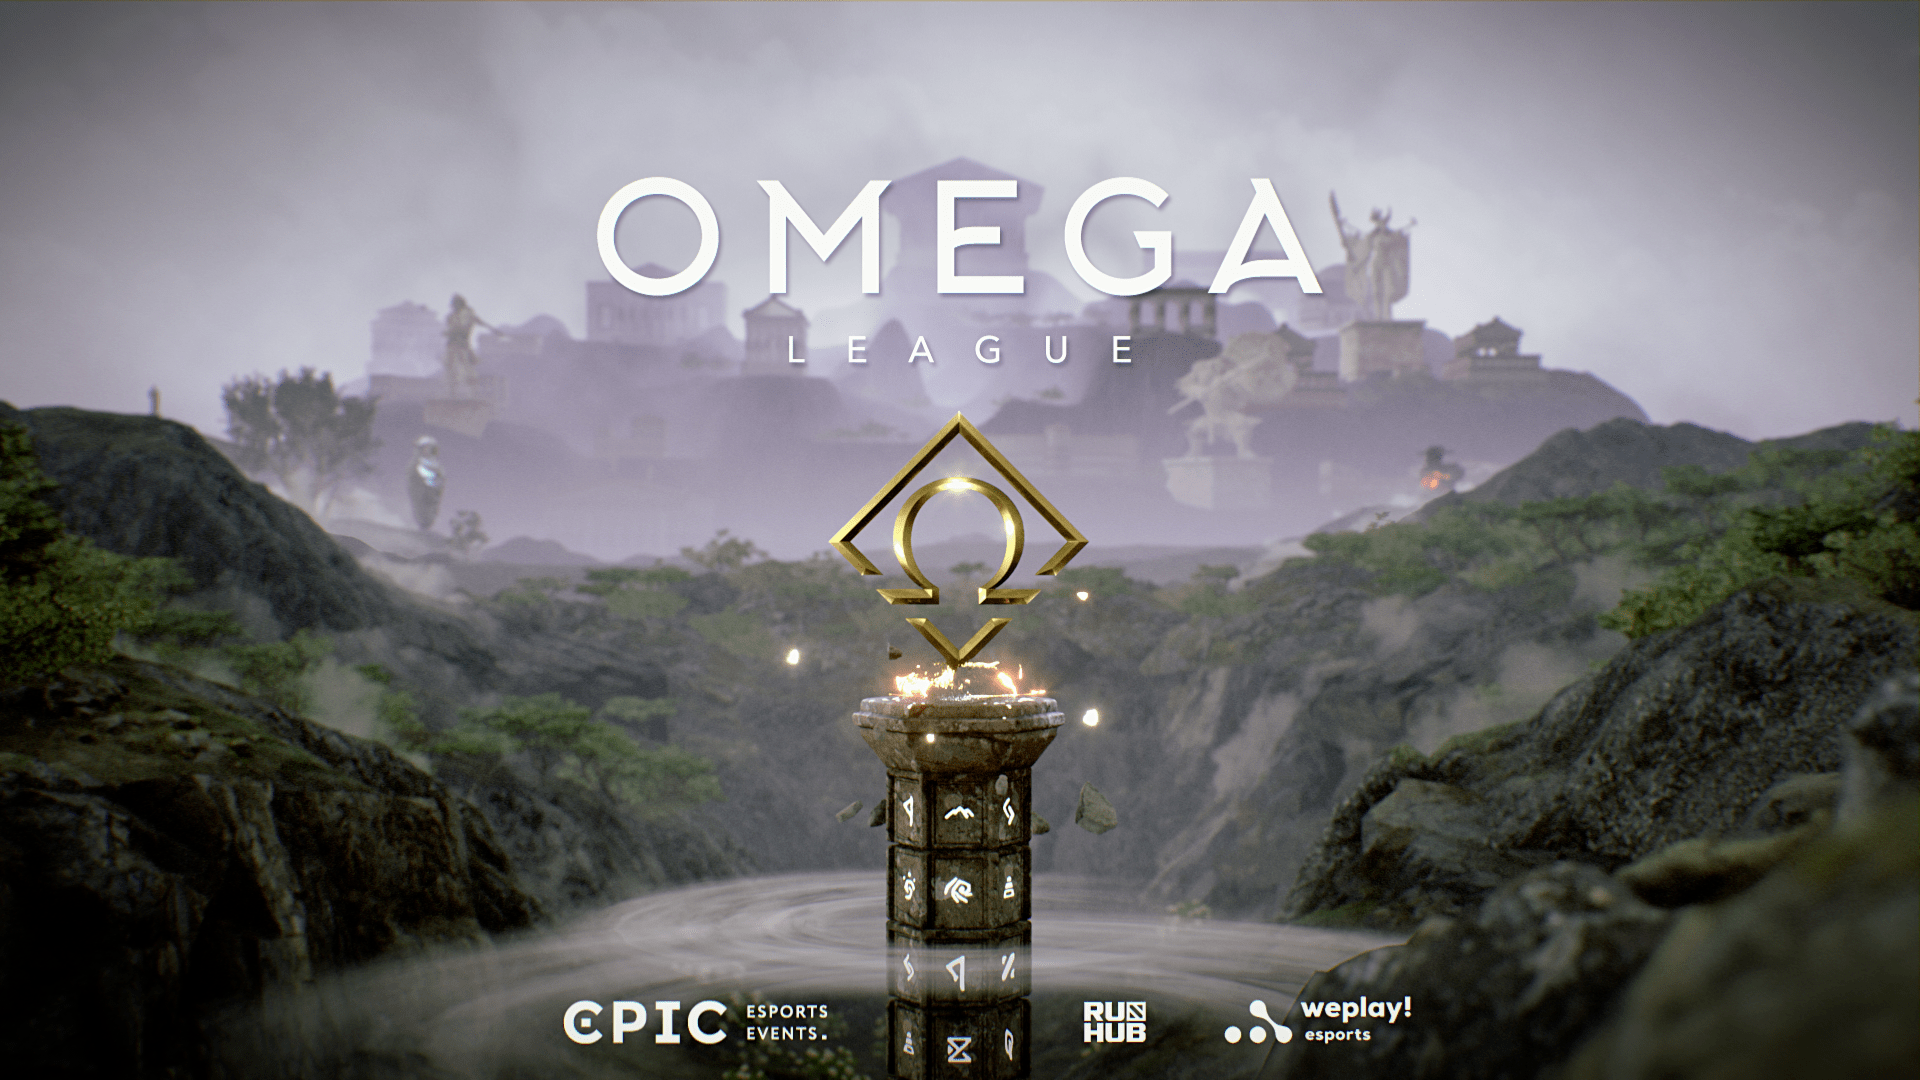 WePlay! and Epic Esports Events present: OMEGA League!